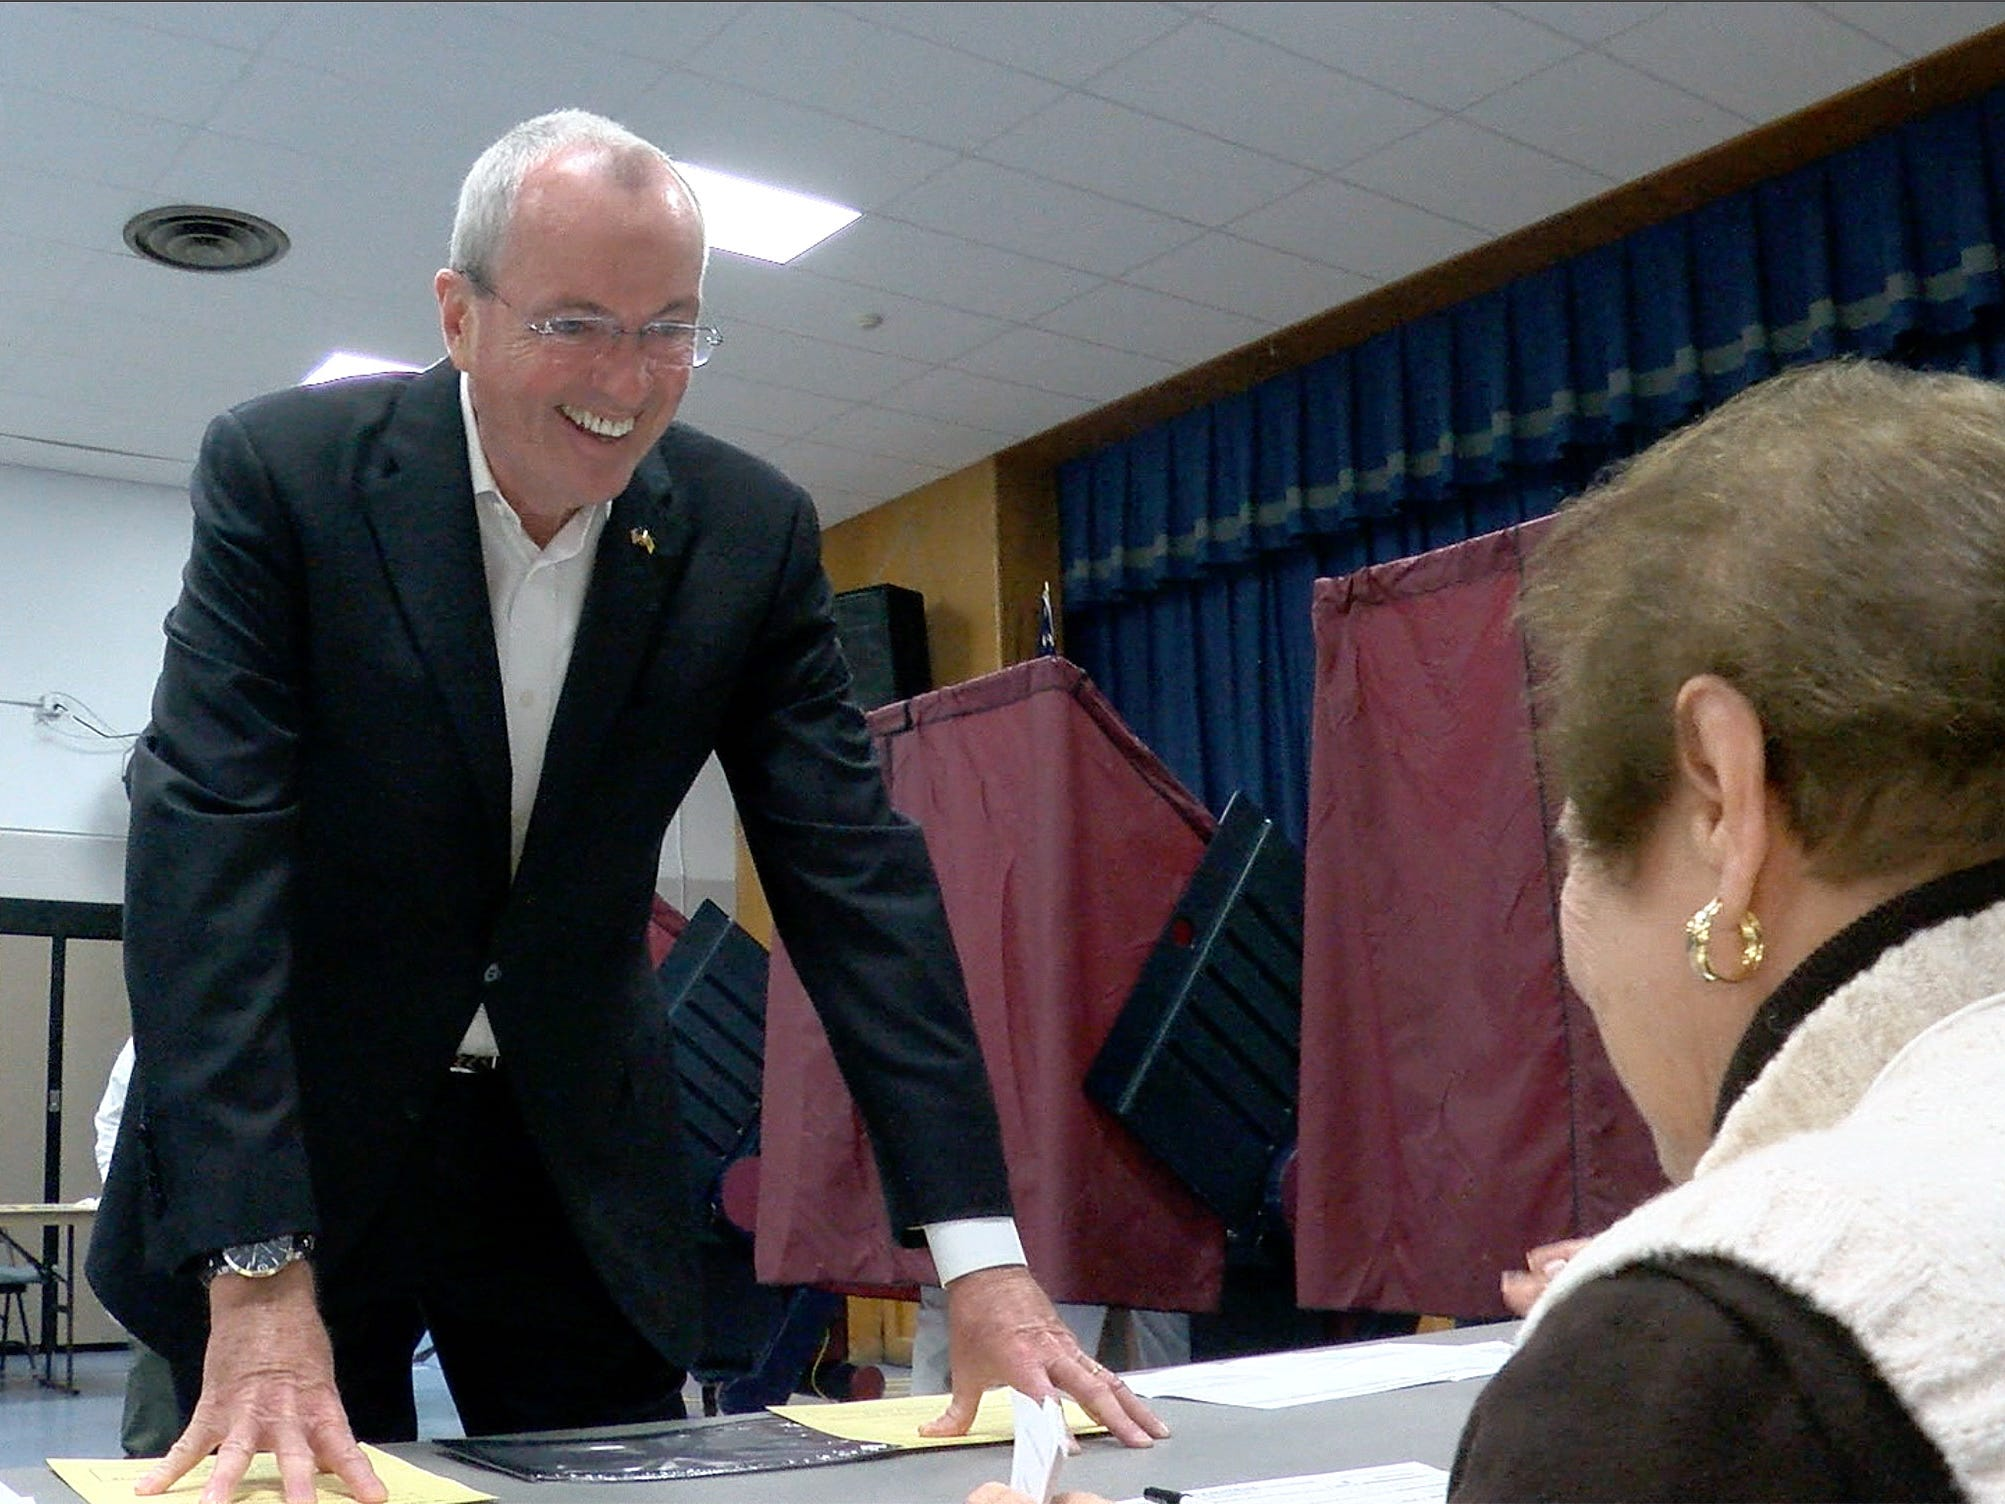 NJ Governor Phil Murphy talks with a poll worker as he prepares to vote at the Fairview Elementary School in Middletown Tuesday, November 6, 2018.